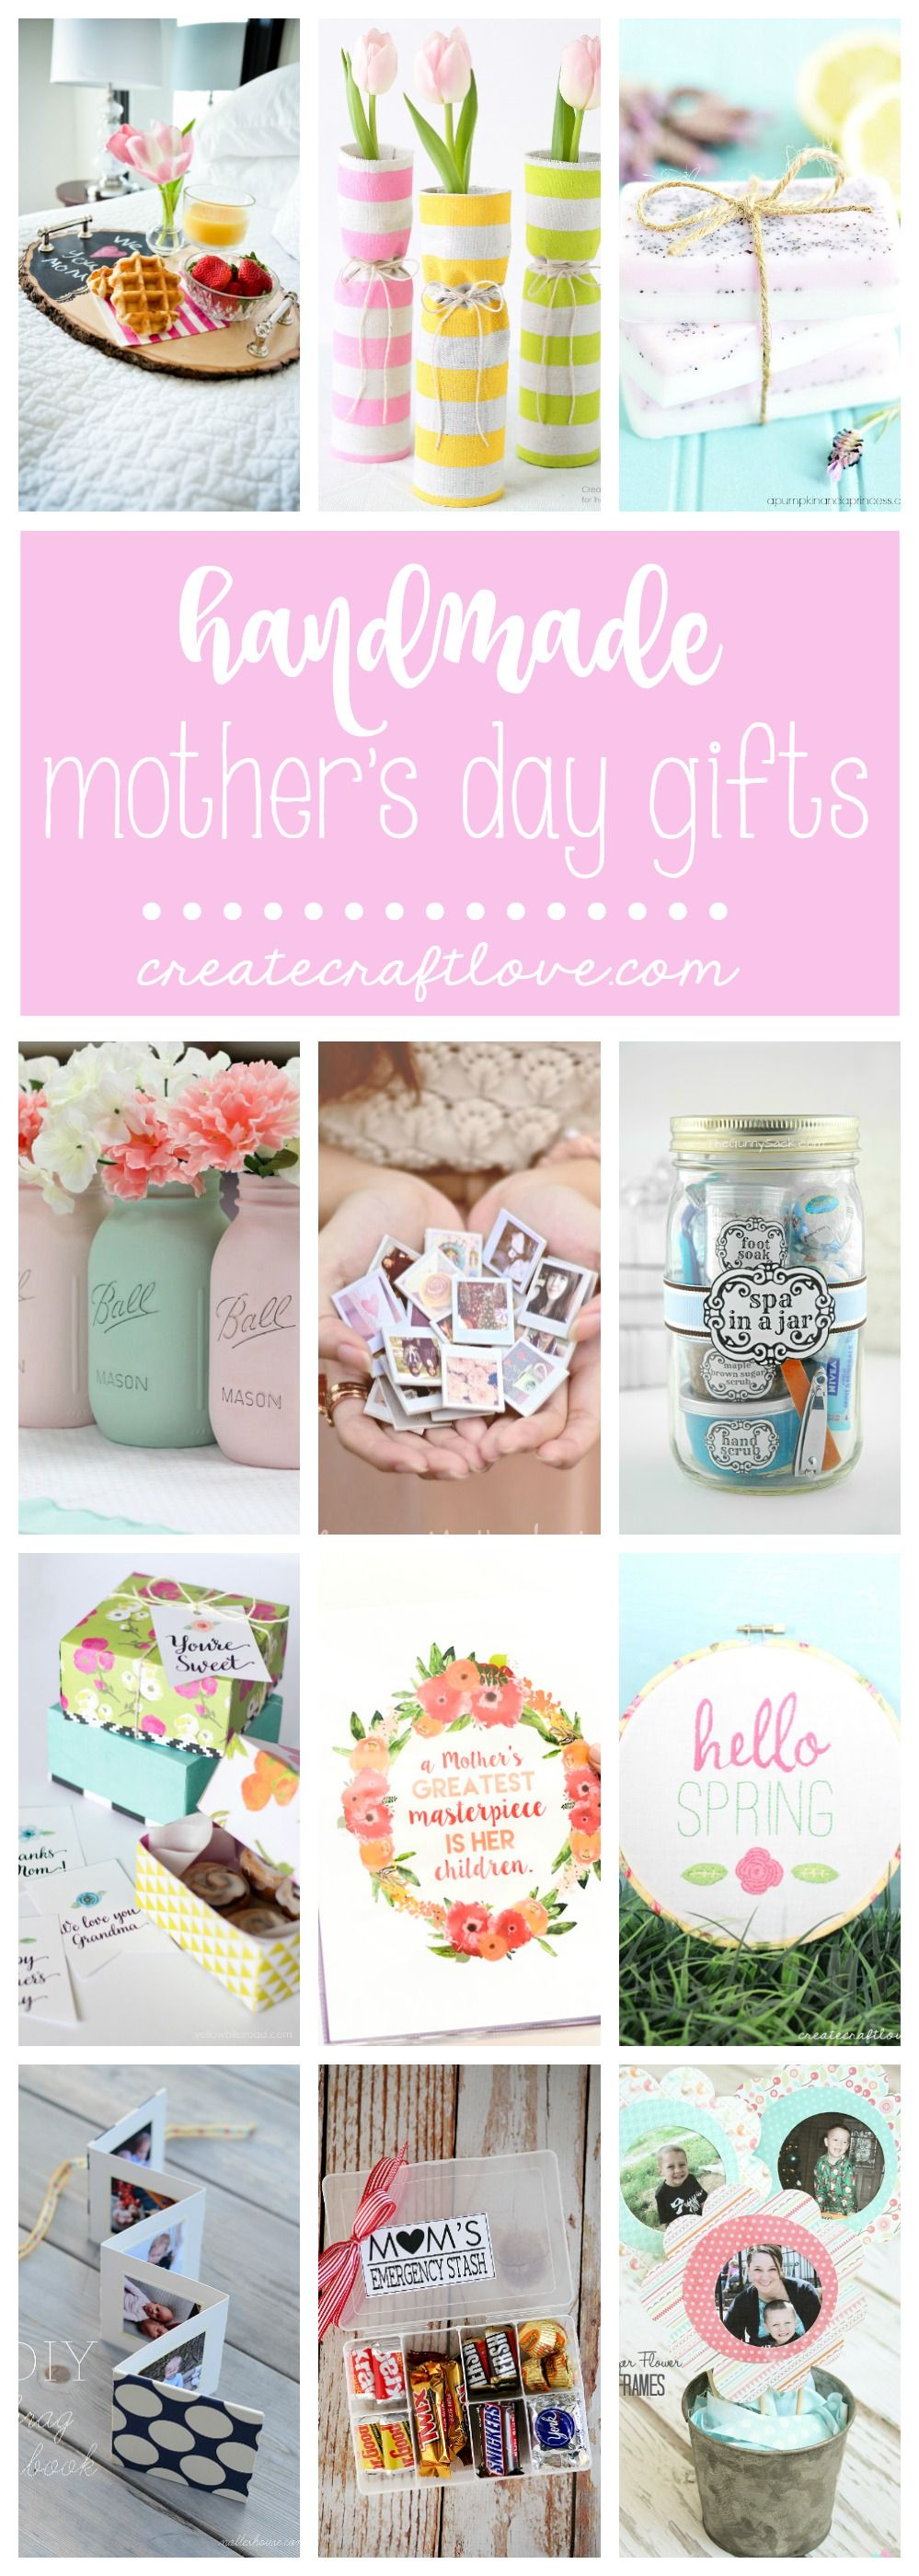 Handmade Mothers Day Gifts Diy Gifts For Mothers Diy Gifts Love